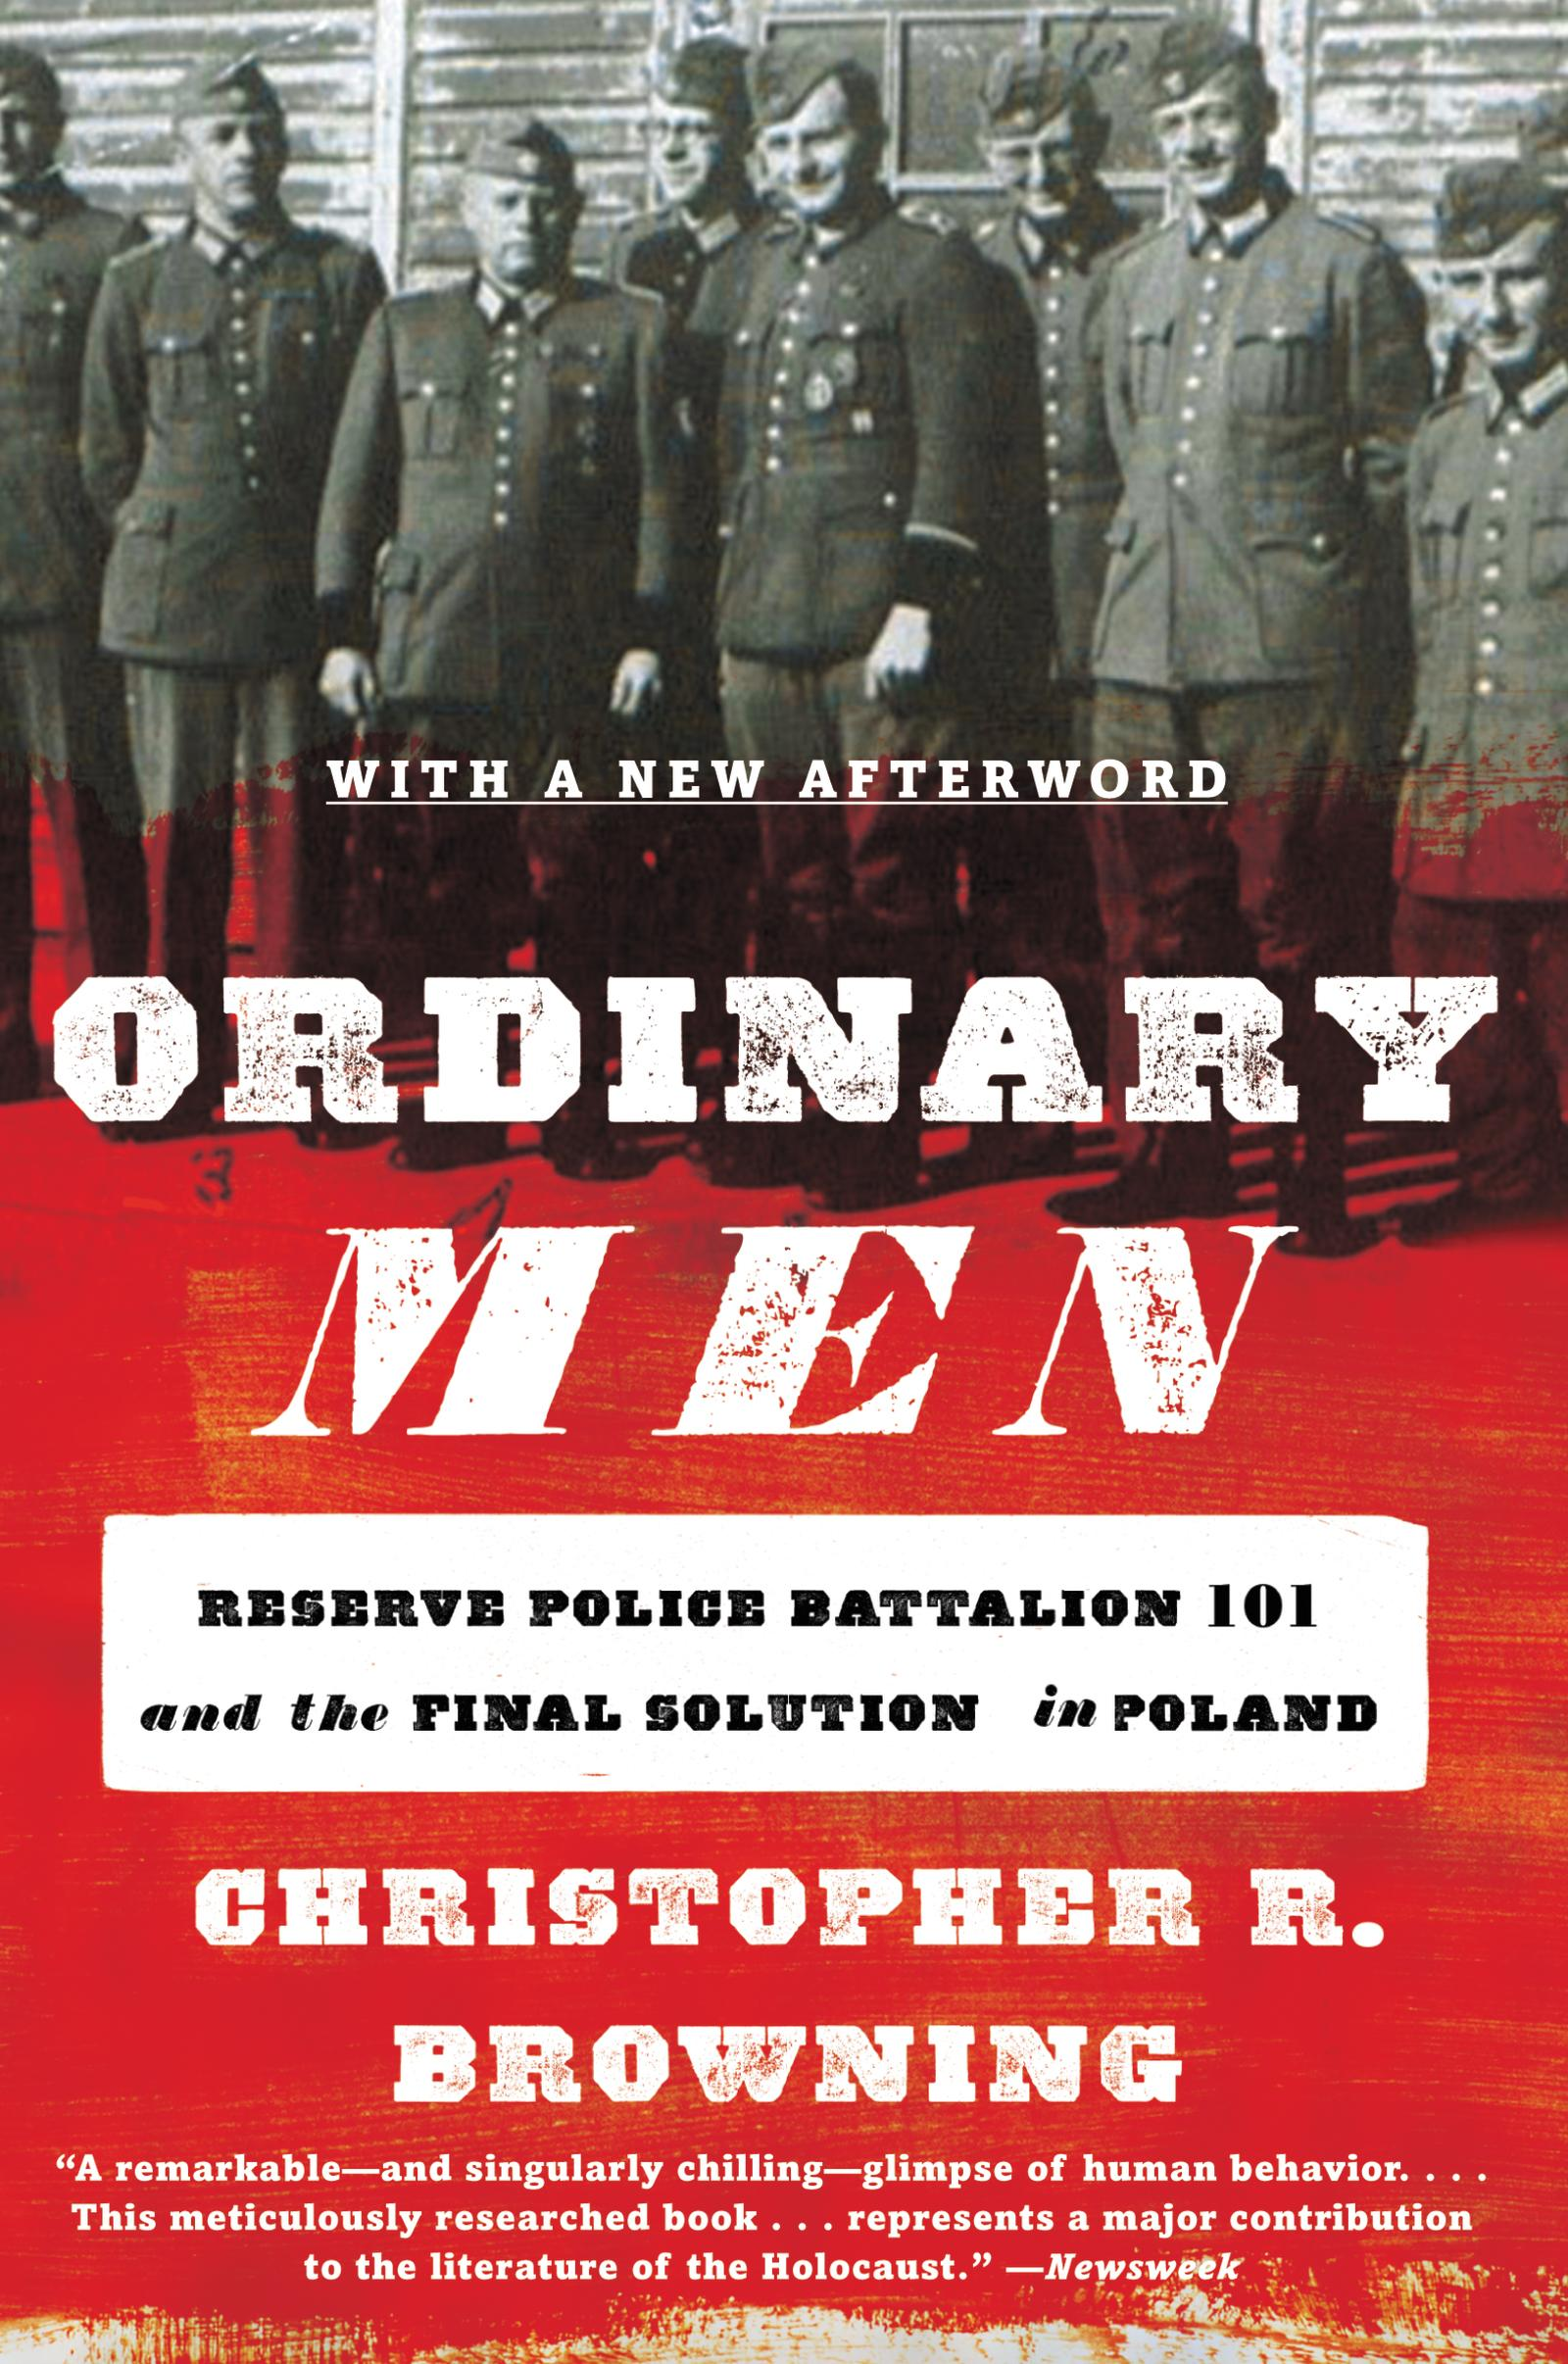 choices christopher brownings ordinary men reserve police In ordinary men: reserve police battalion 101 and the final solution in poland (new york: harper perennial, 1993) historian christopher r browning reveals the true nature of the banality of evil by recounting the transformation of members of the order police, the police battalion 101, from regular men to brutal killers.